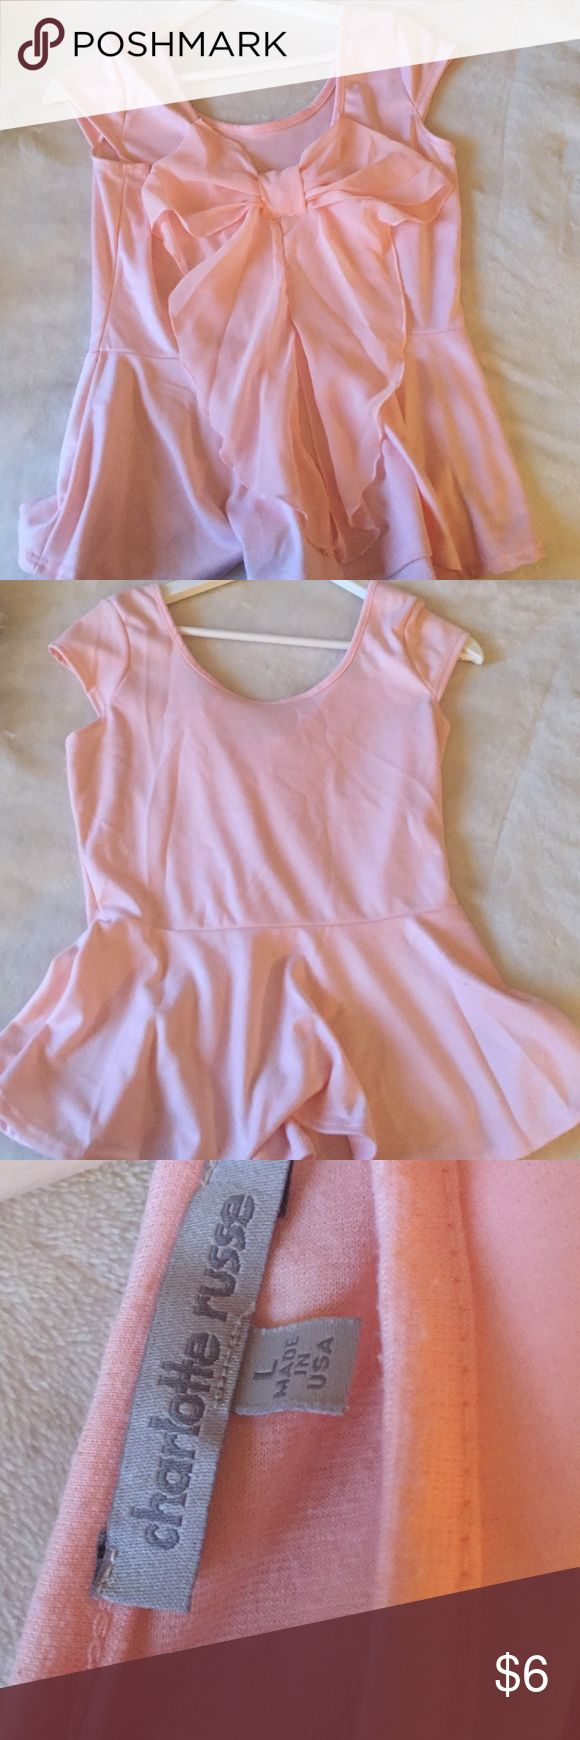 Peplum top Light pink peplum top! With a bow in the back! Charlotte Russe Tops Camisoles